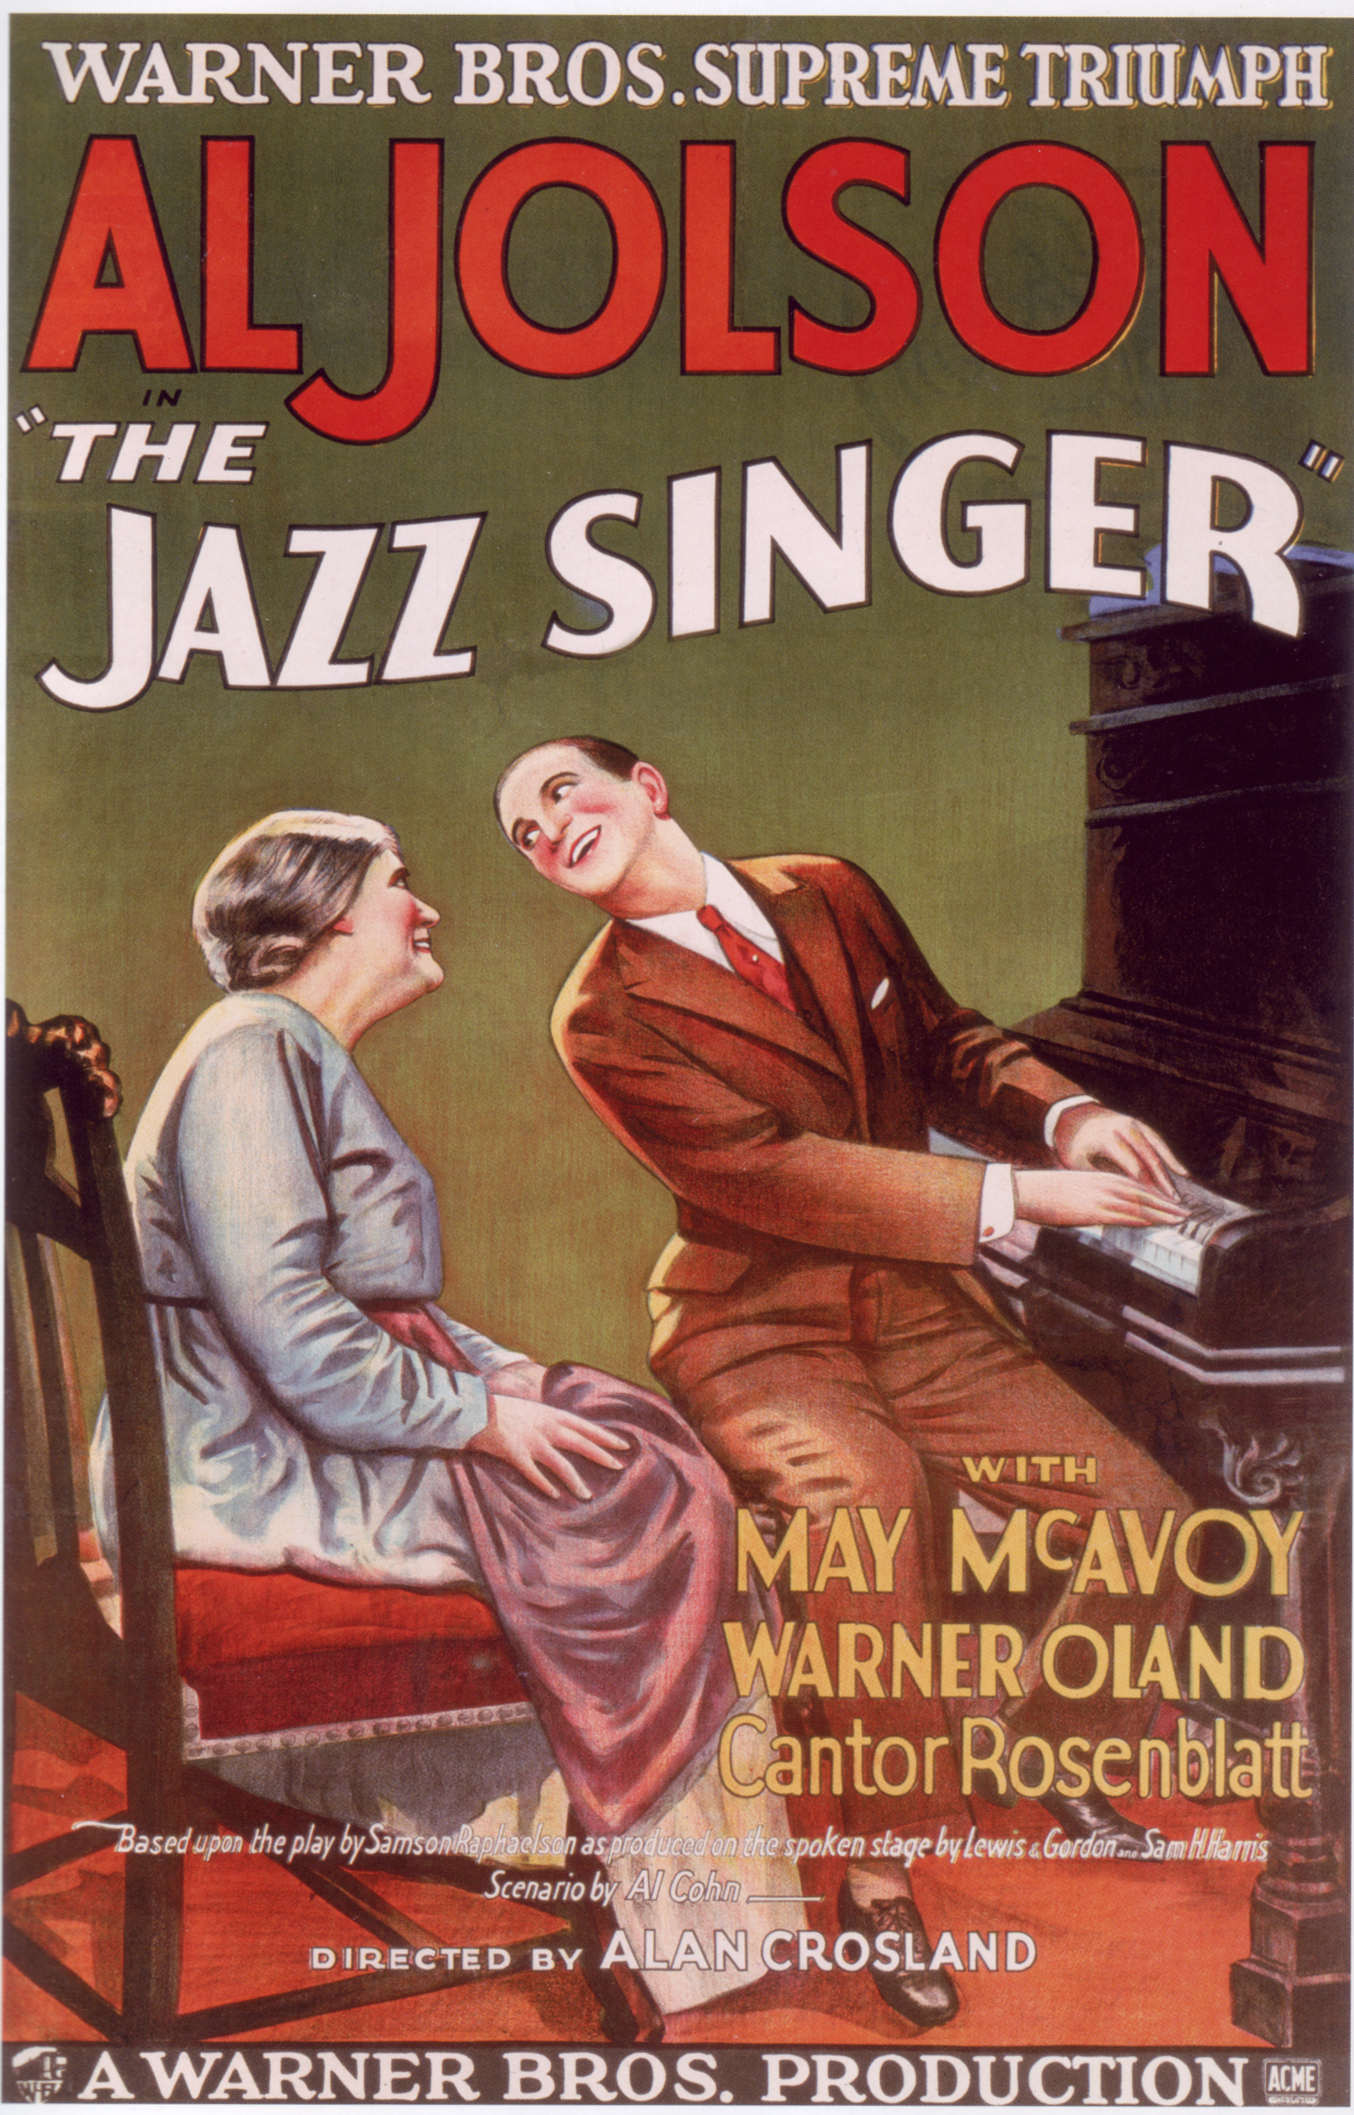 <em>A dzsesszénekes</em> (The Jazz Singer. Alan Crosland, 1927)